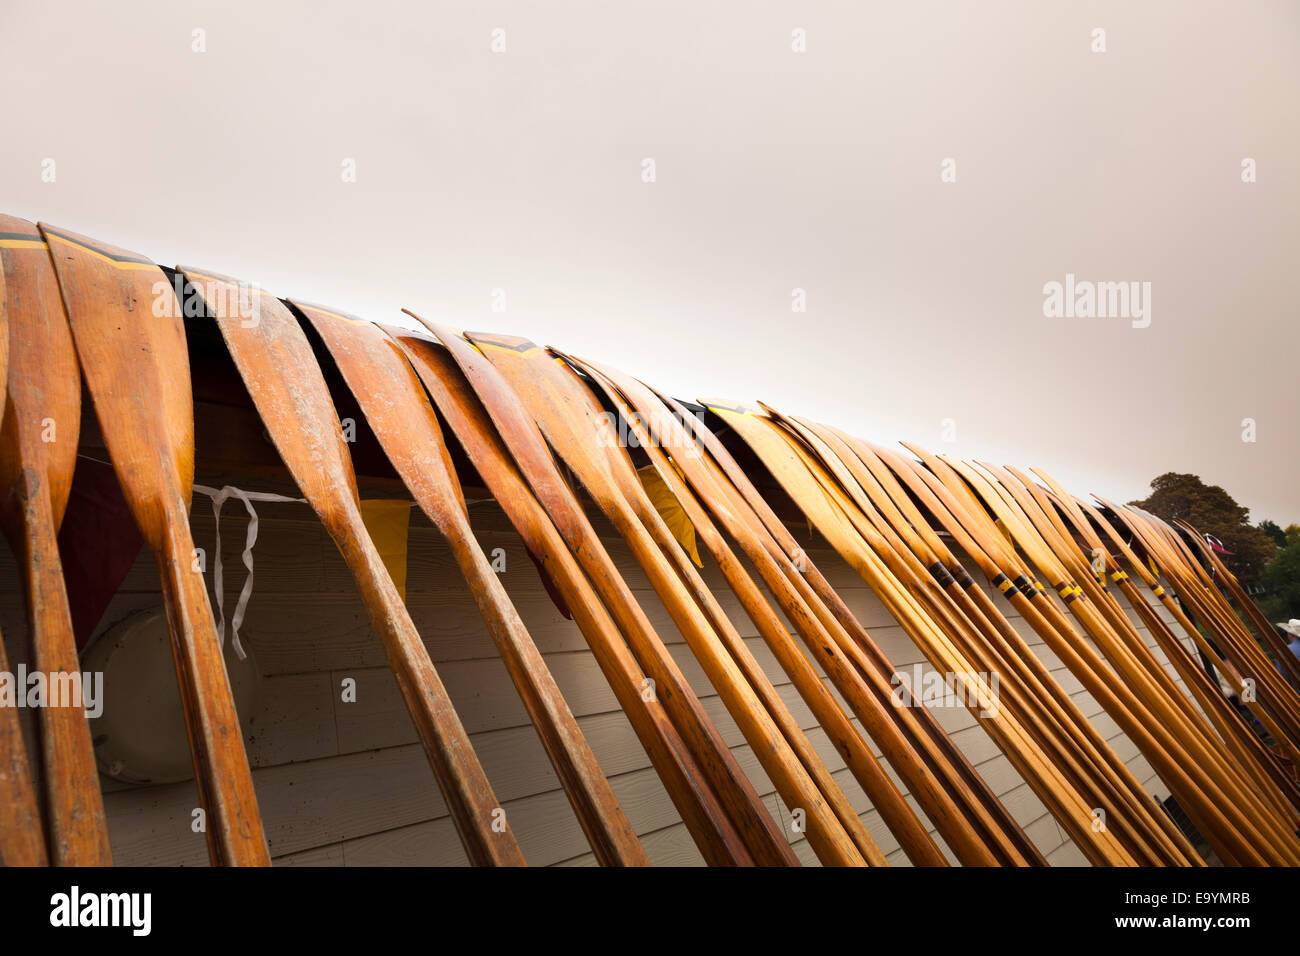 Many oars leaning against the side of the clubhouse Stock Photo